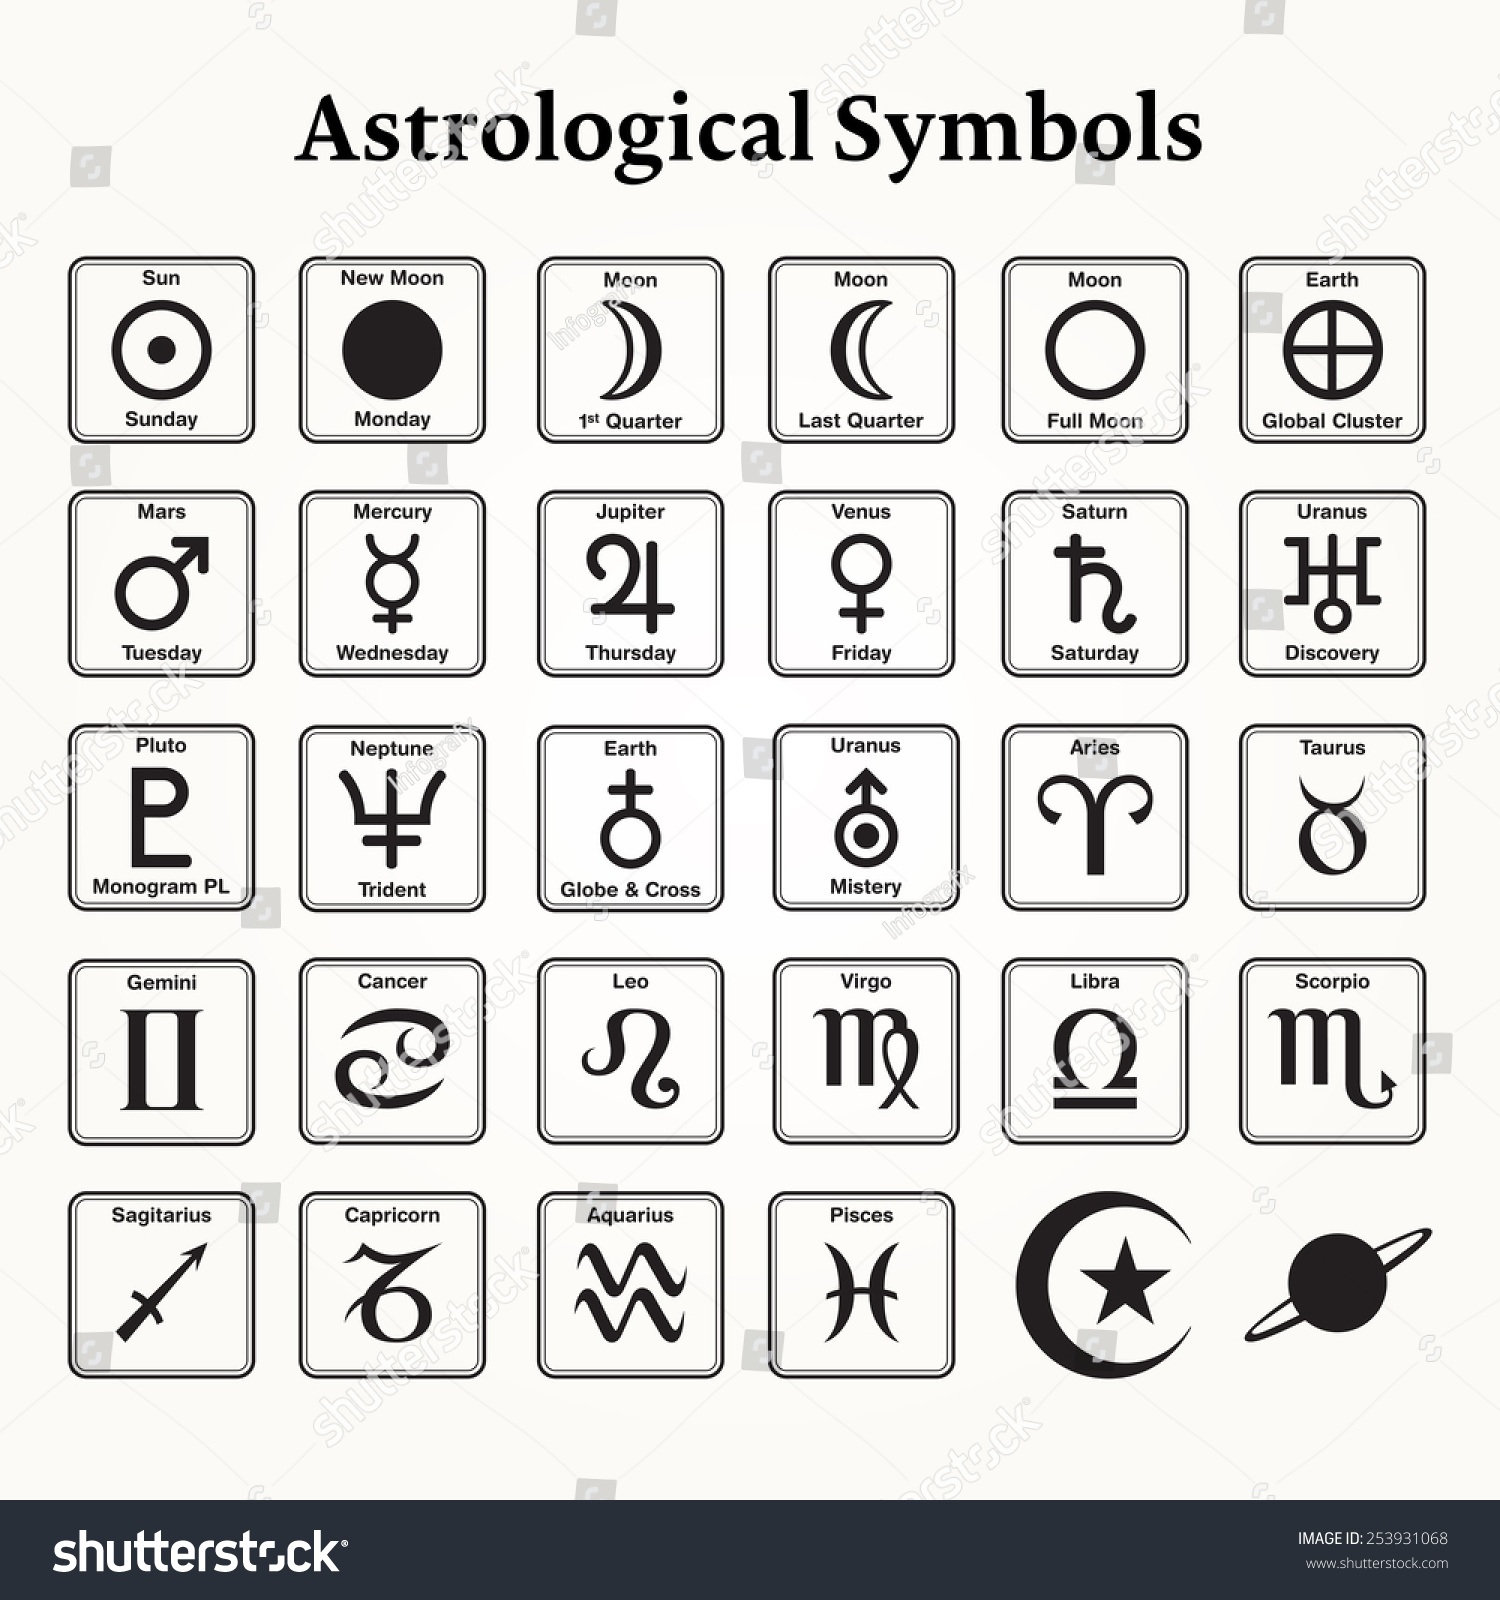 Elements astrology zodiac symbols signs stock vector 253931068 elements of astrology zodiac symbols and signs biocorpaavc Gallery